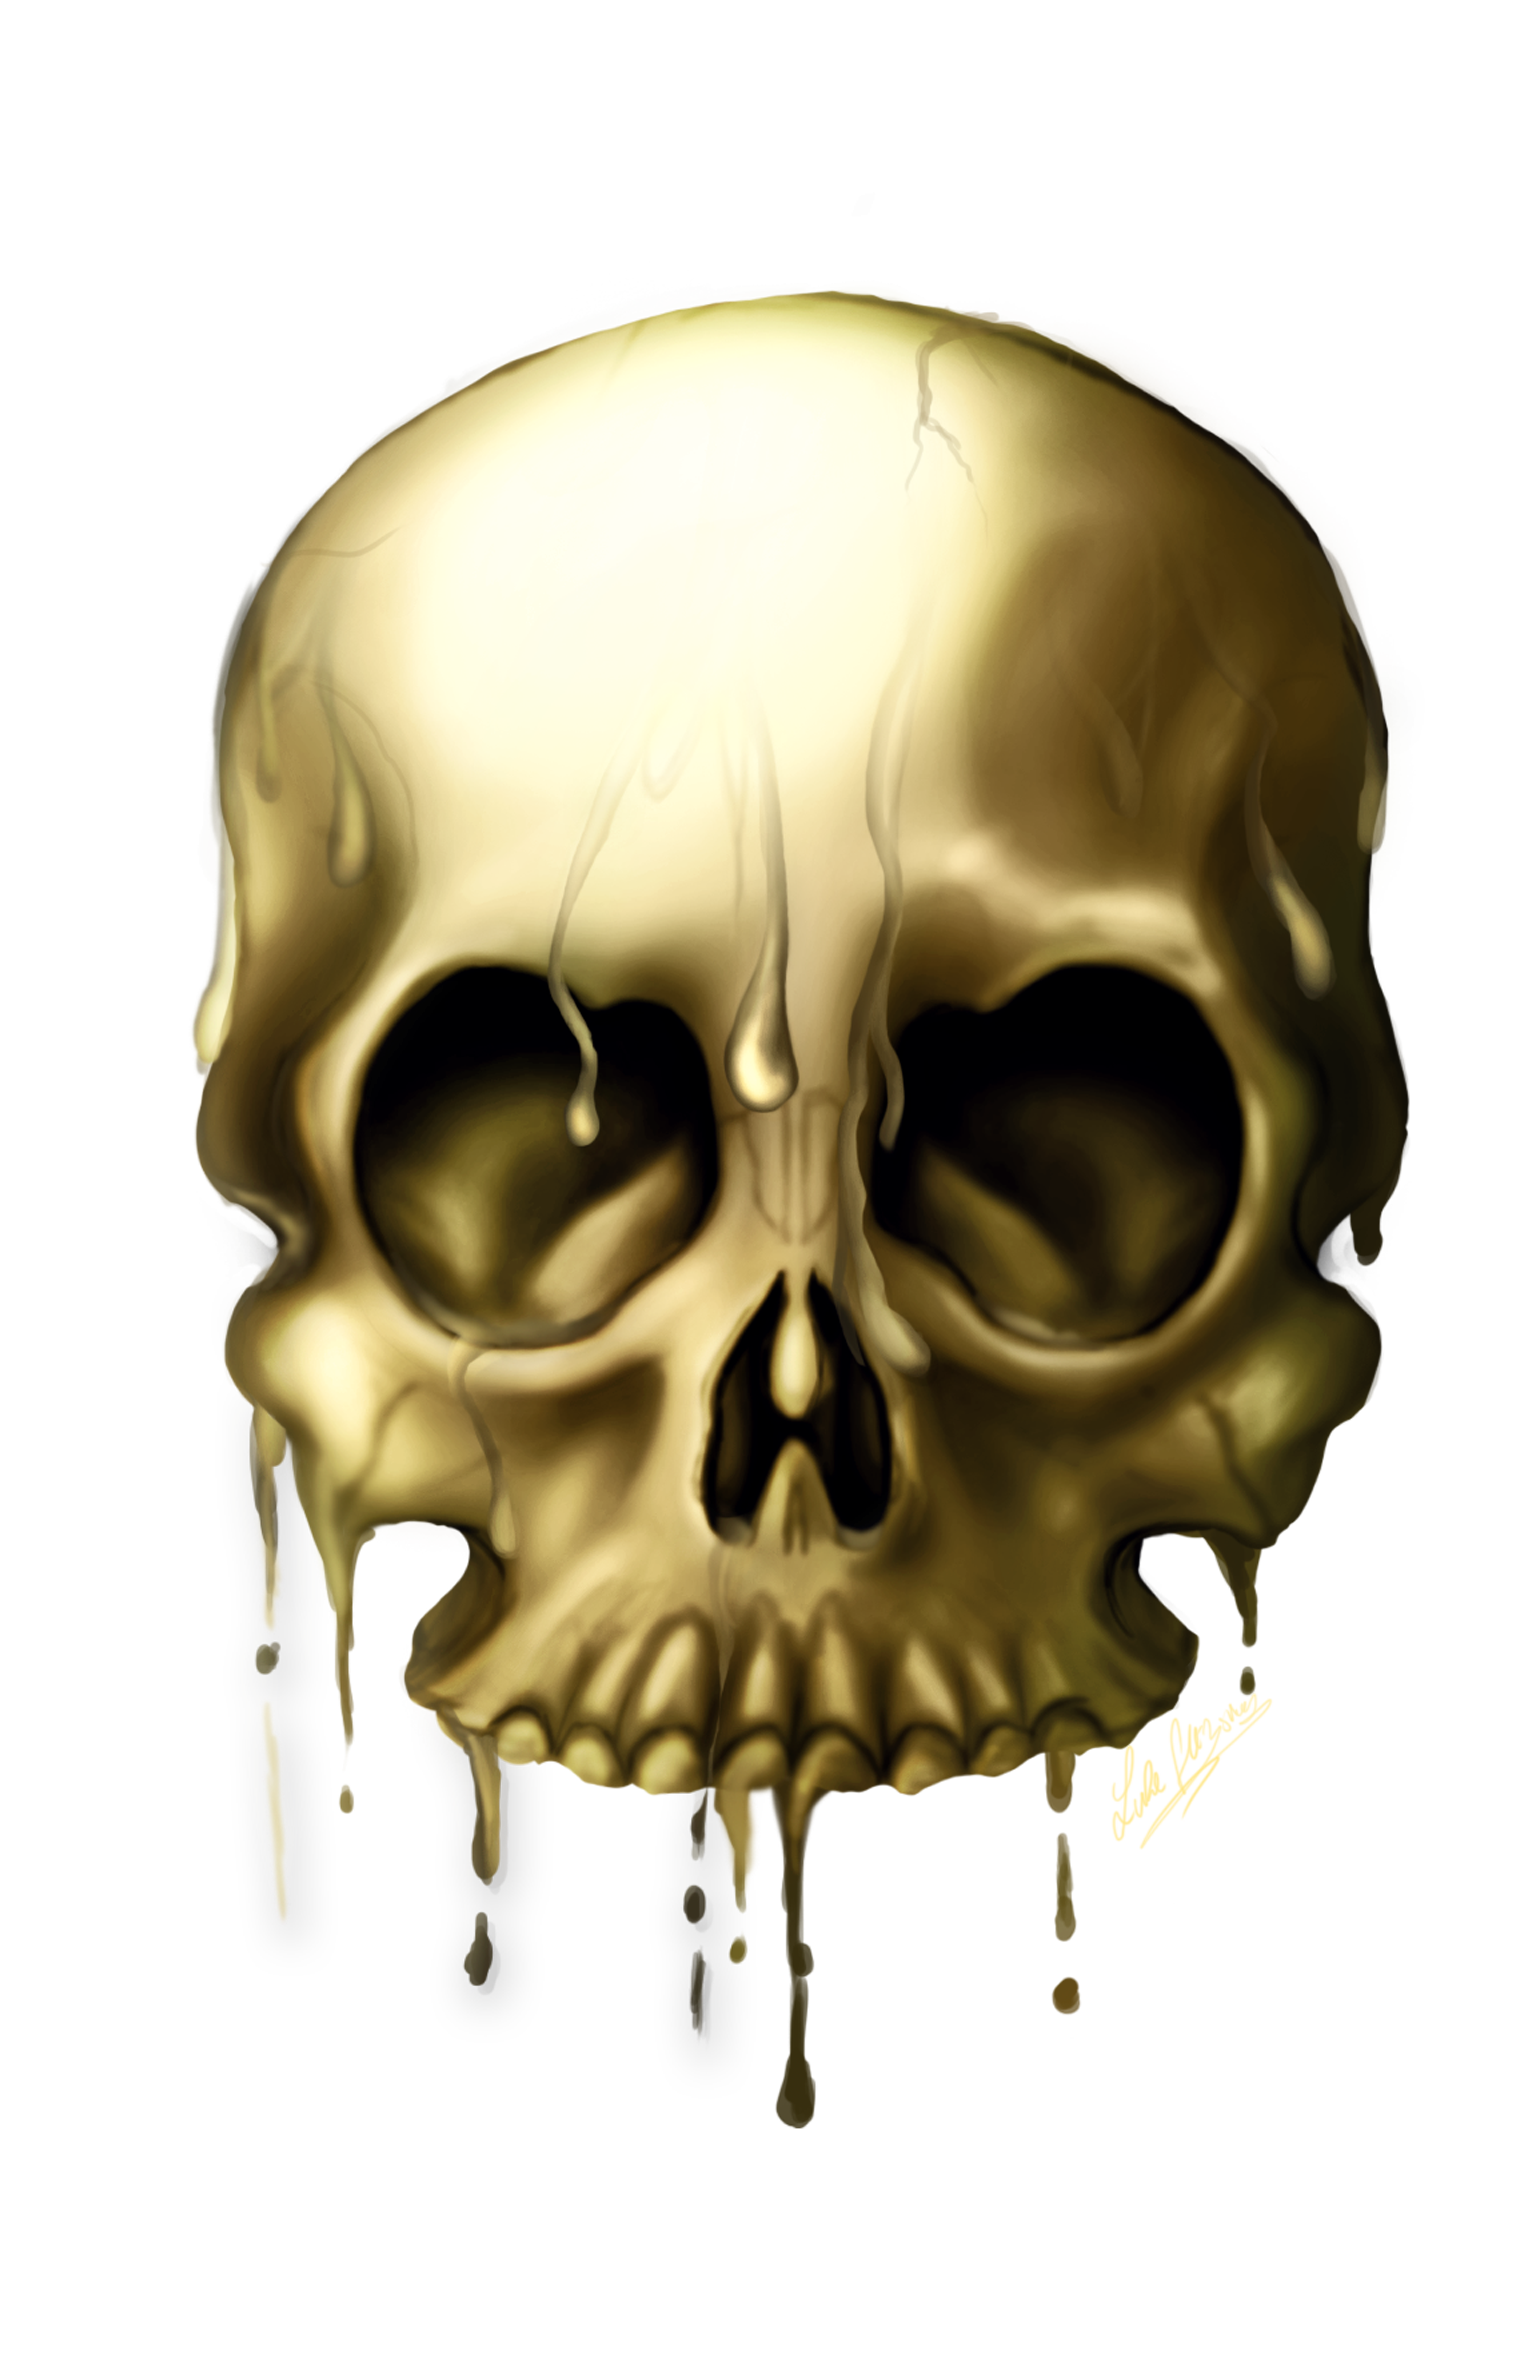 Skull HD Photo Png PNG Images